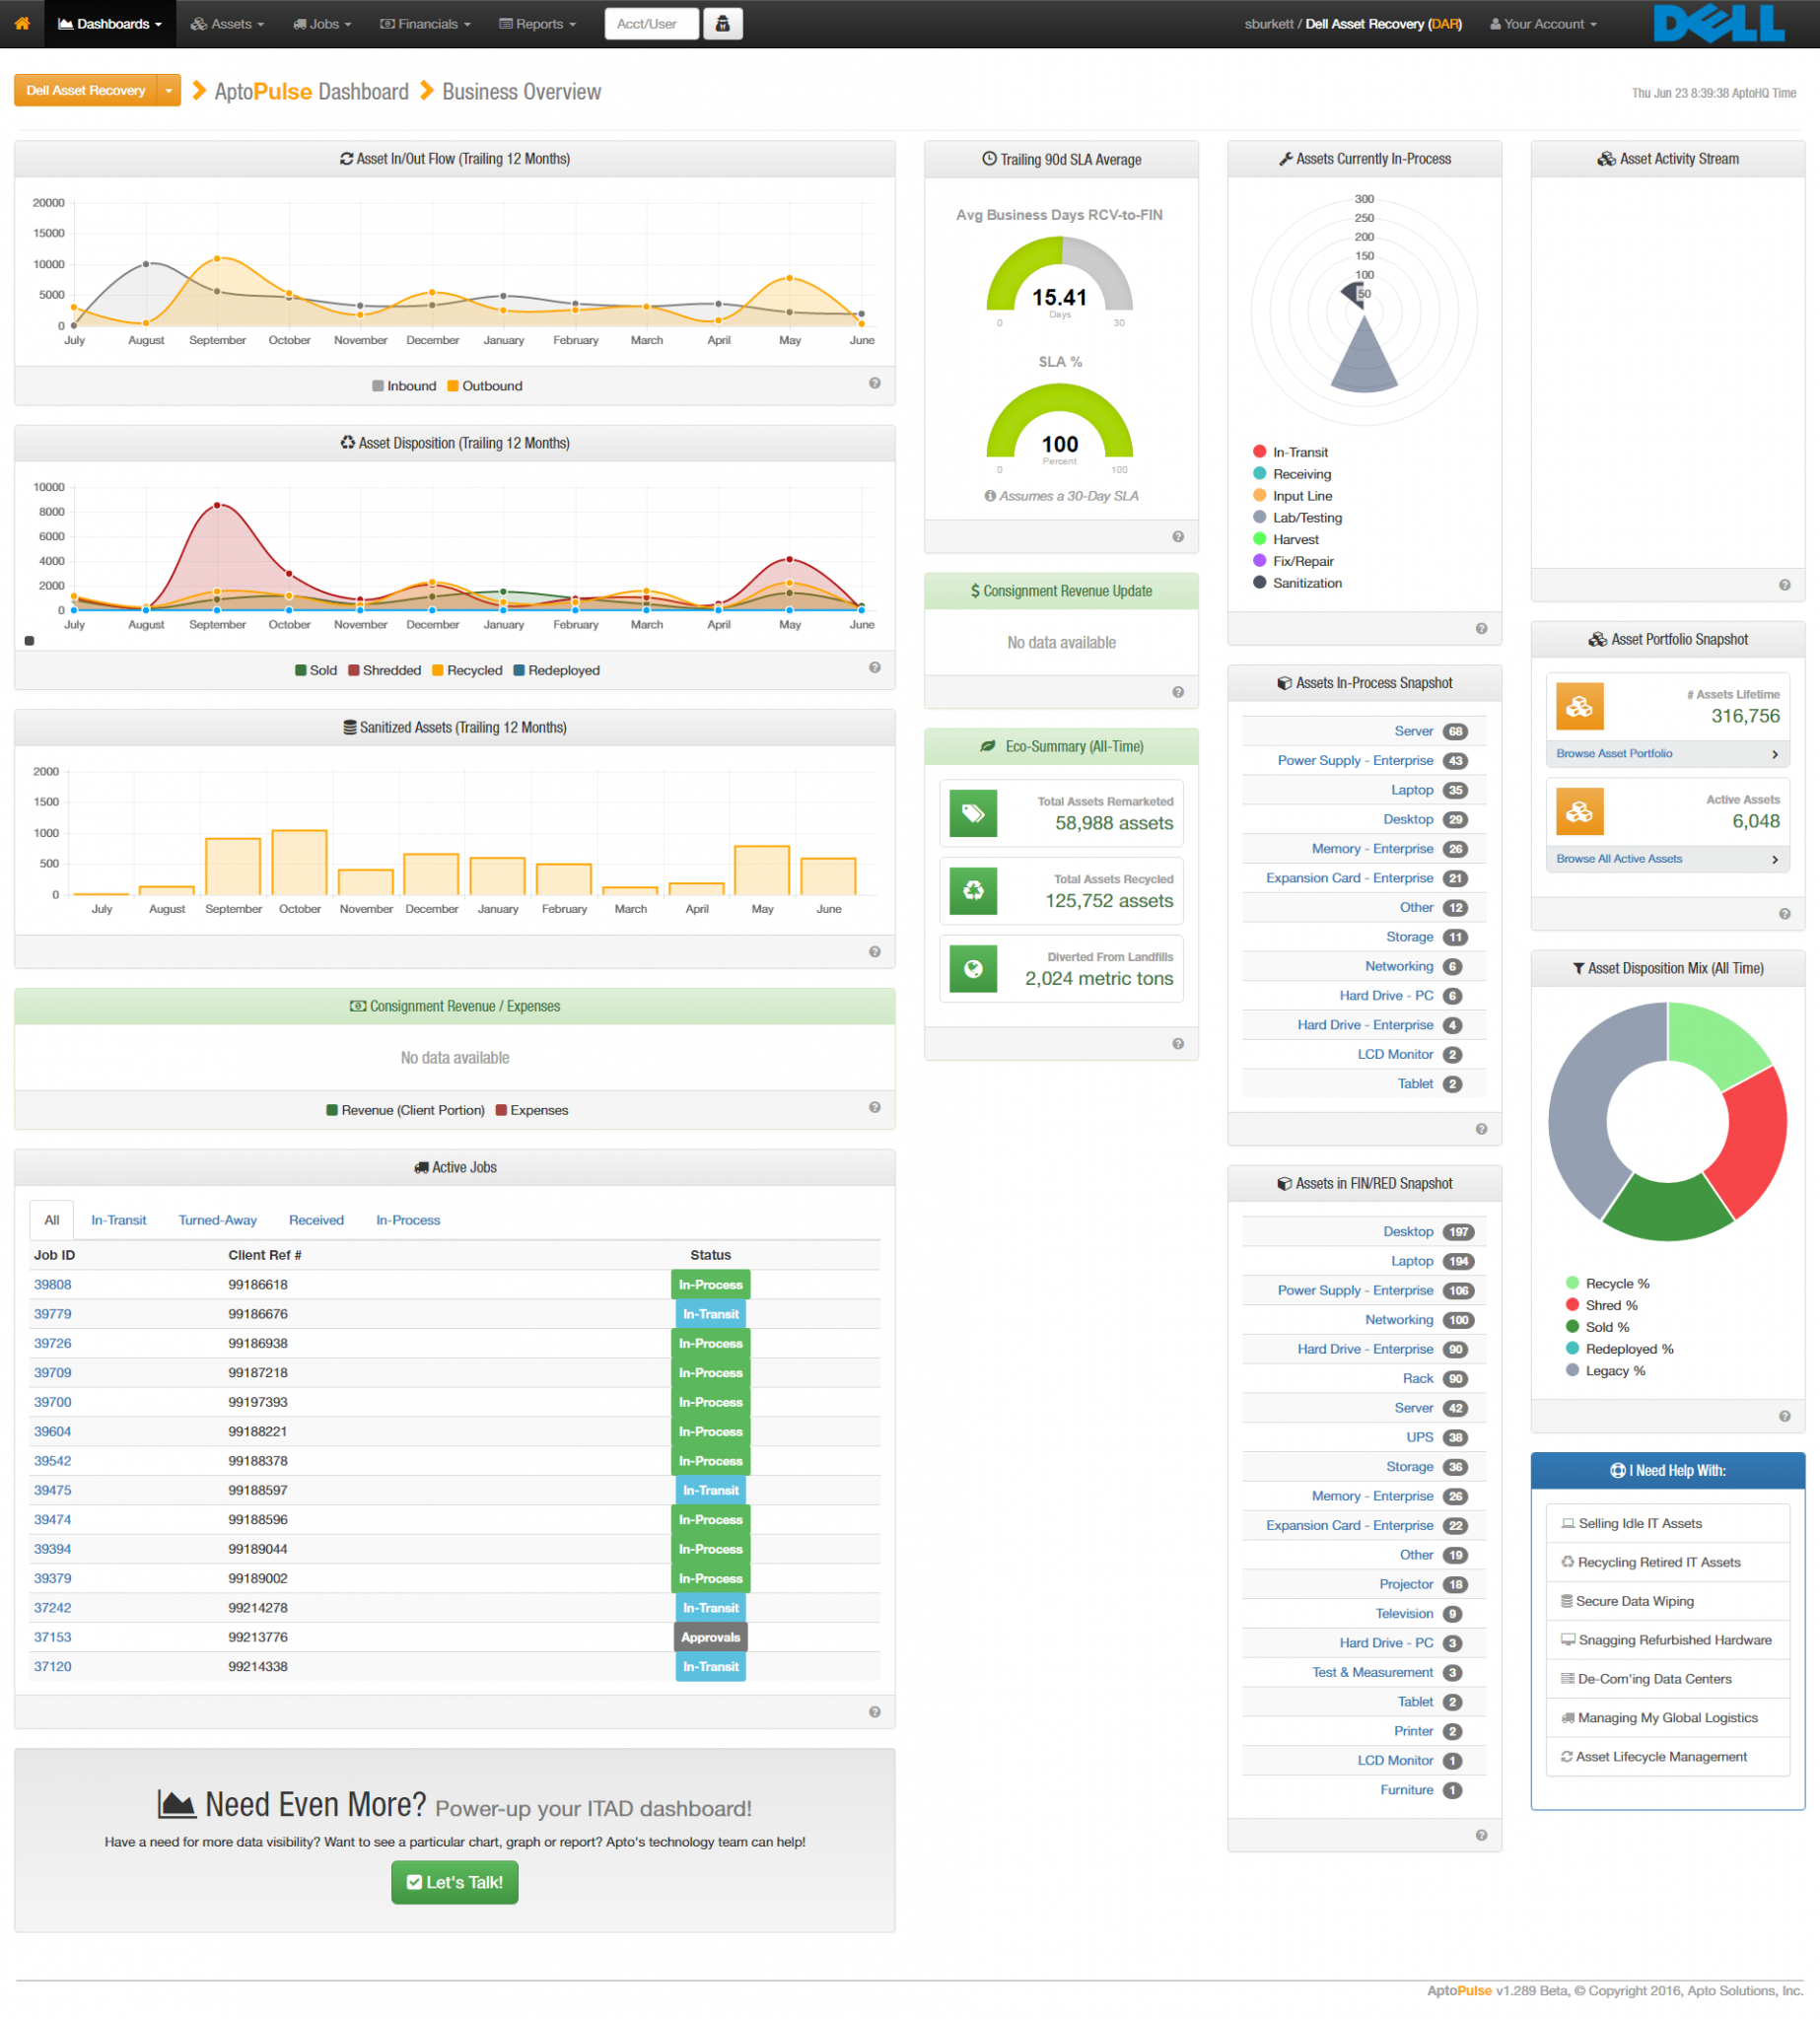 Apto Solutions - AptoPulse Dashboard